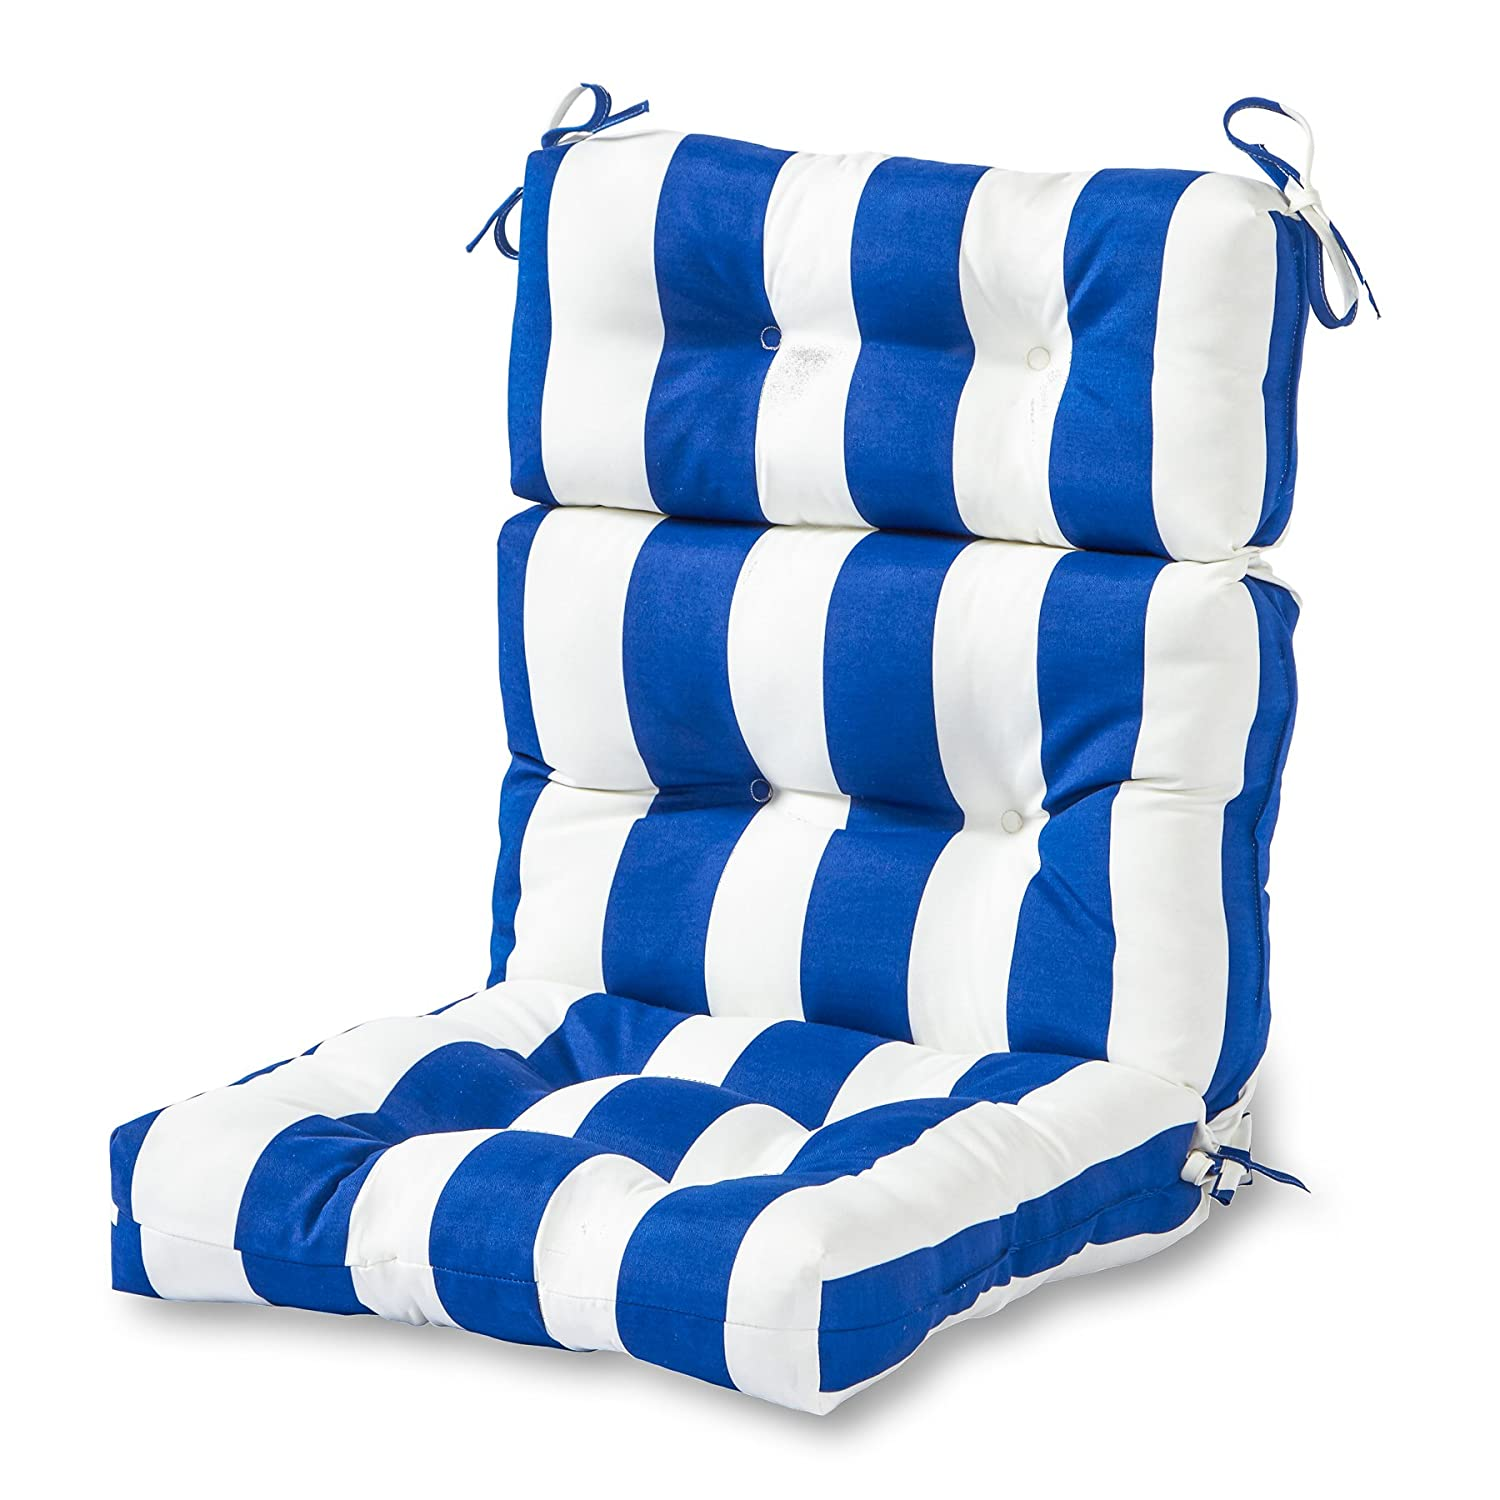 Greendale Home Fashions* Solid Outdoor Chair Cushion in Kiwi